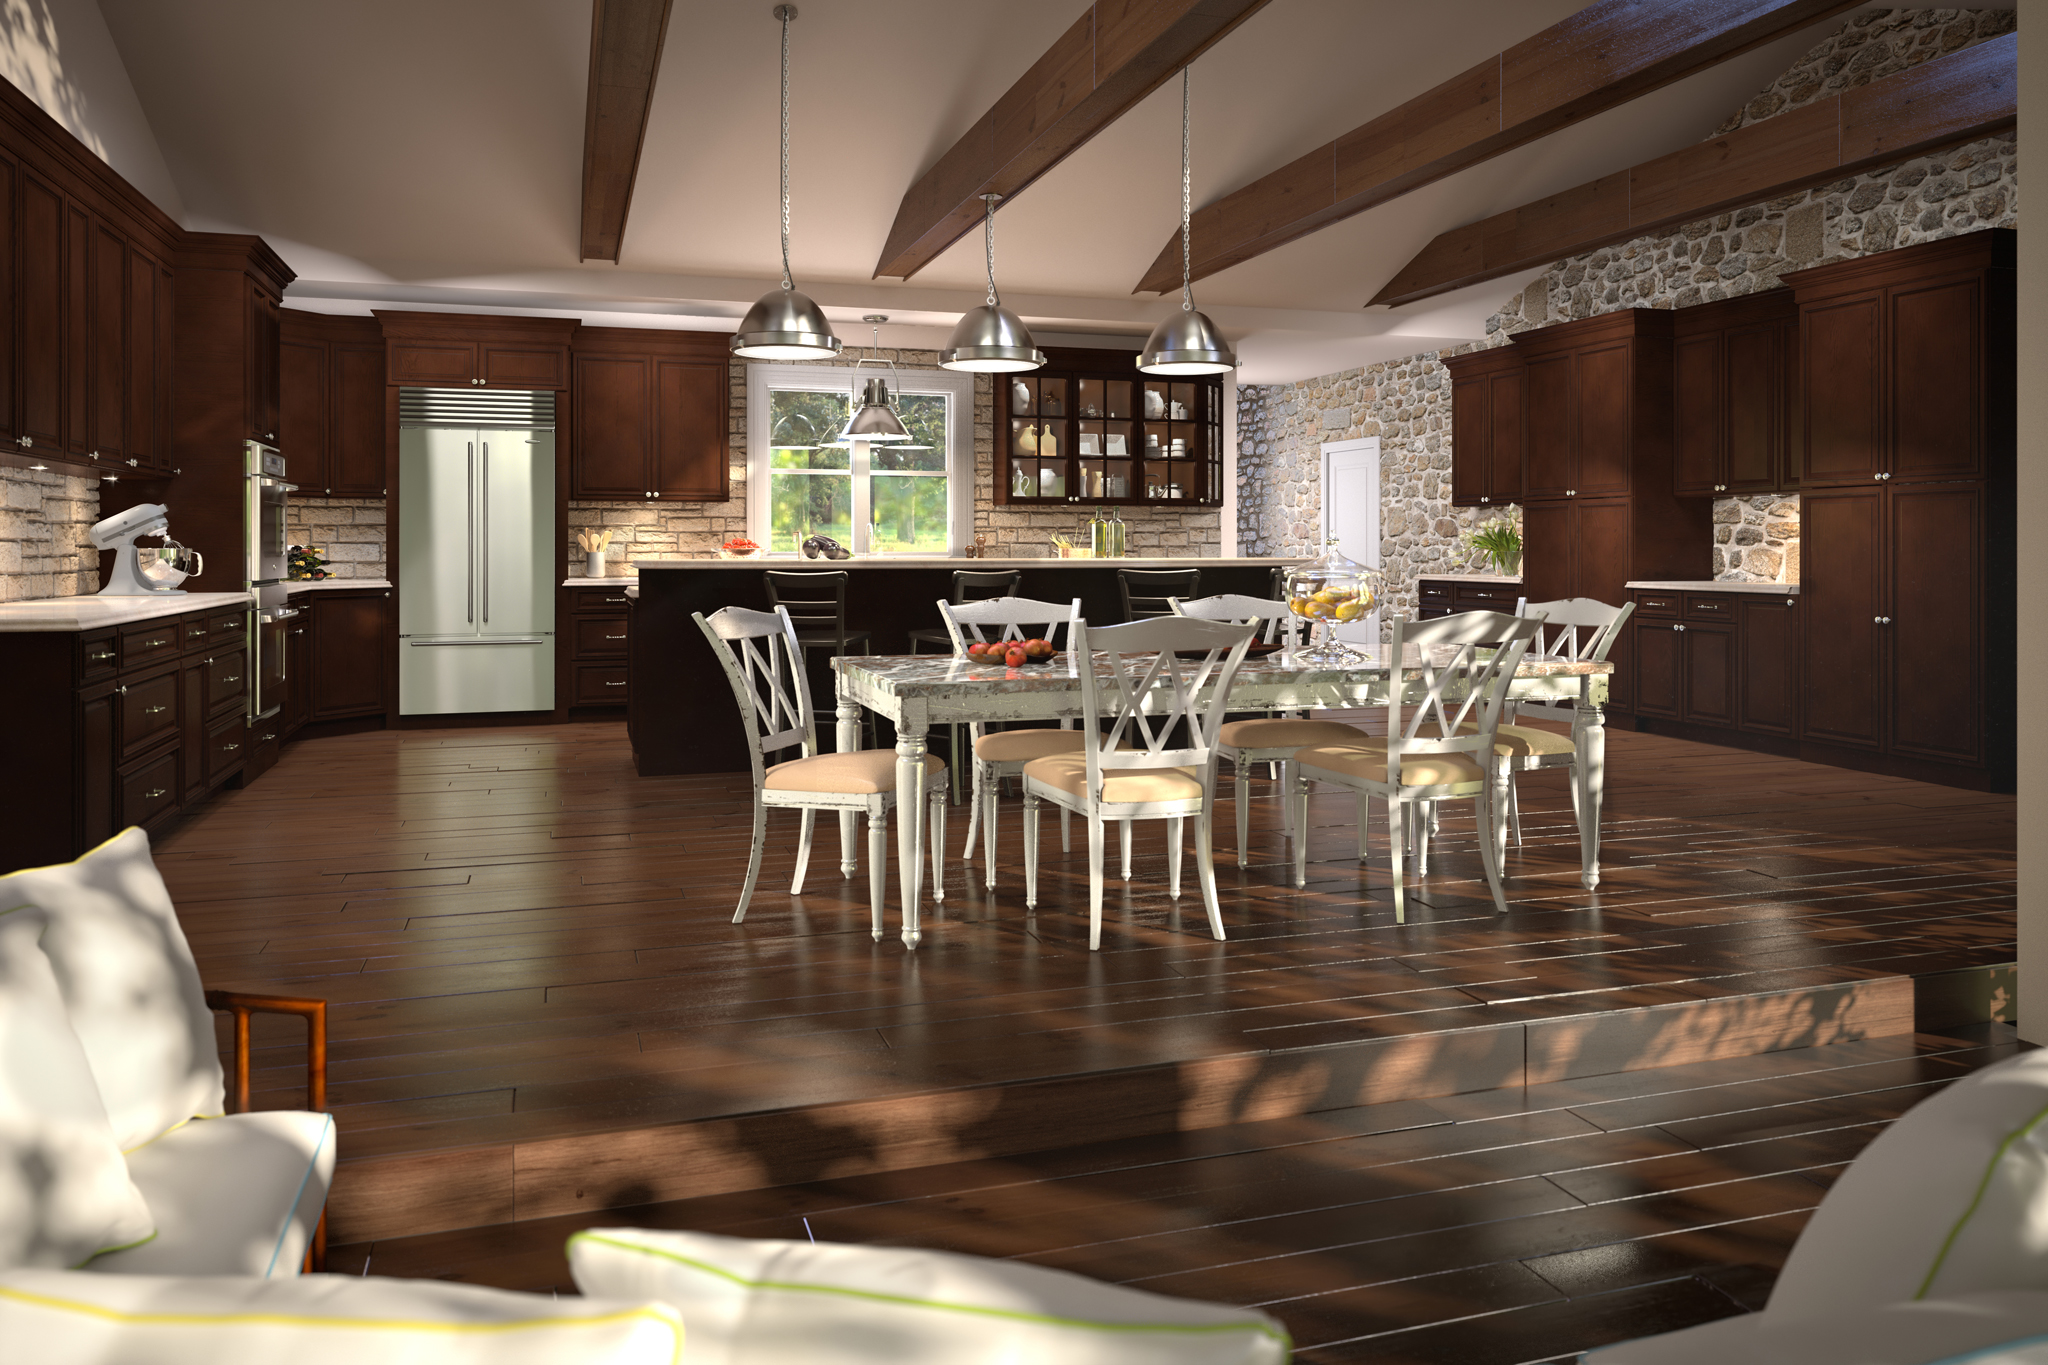 3d rendering of dark kitchen cabinetry and dining area